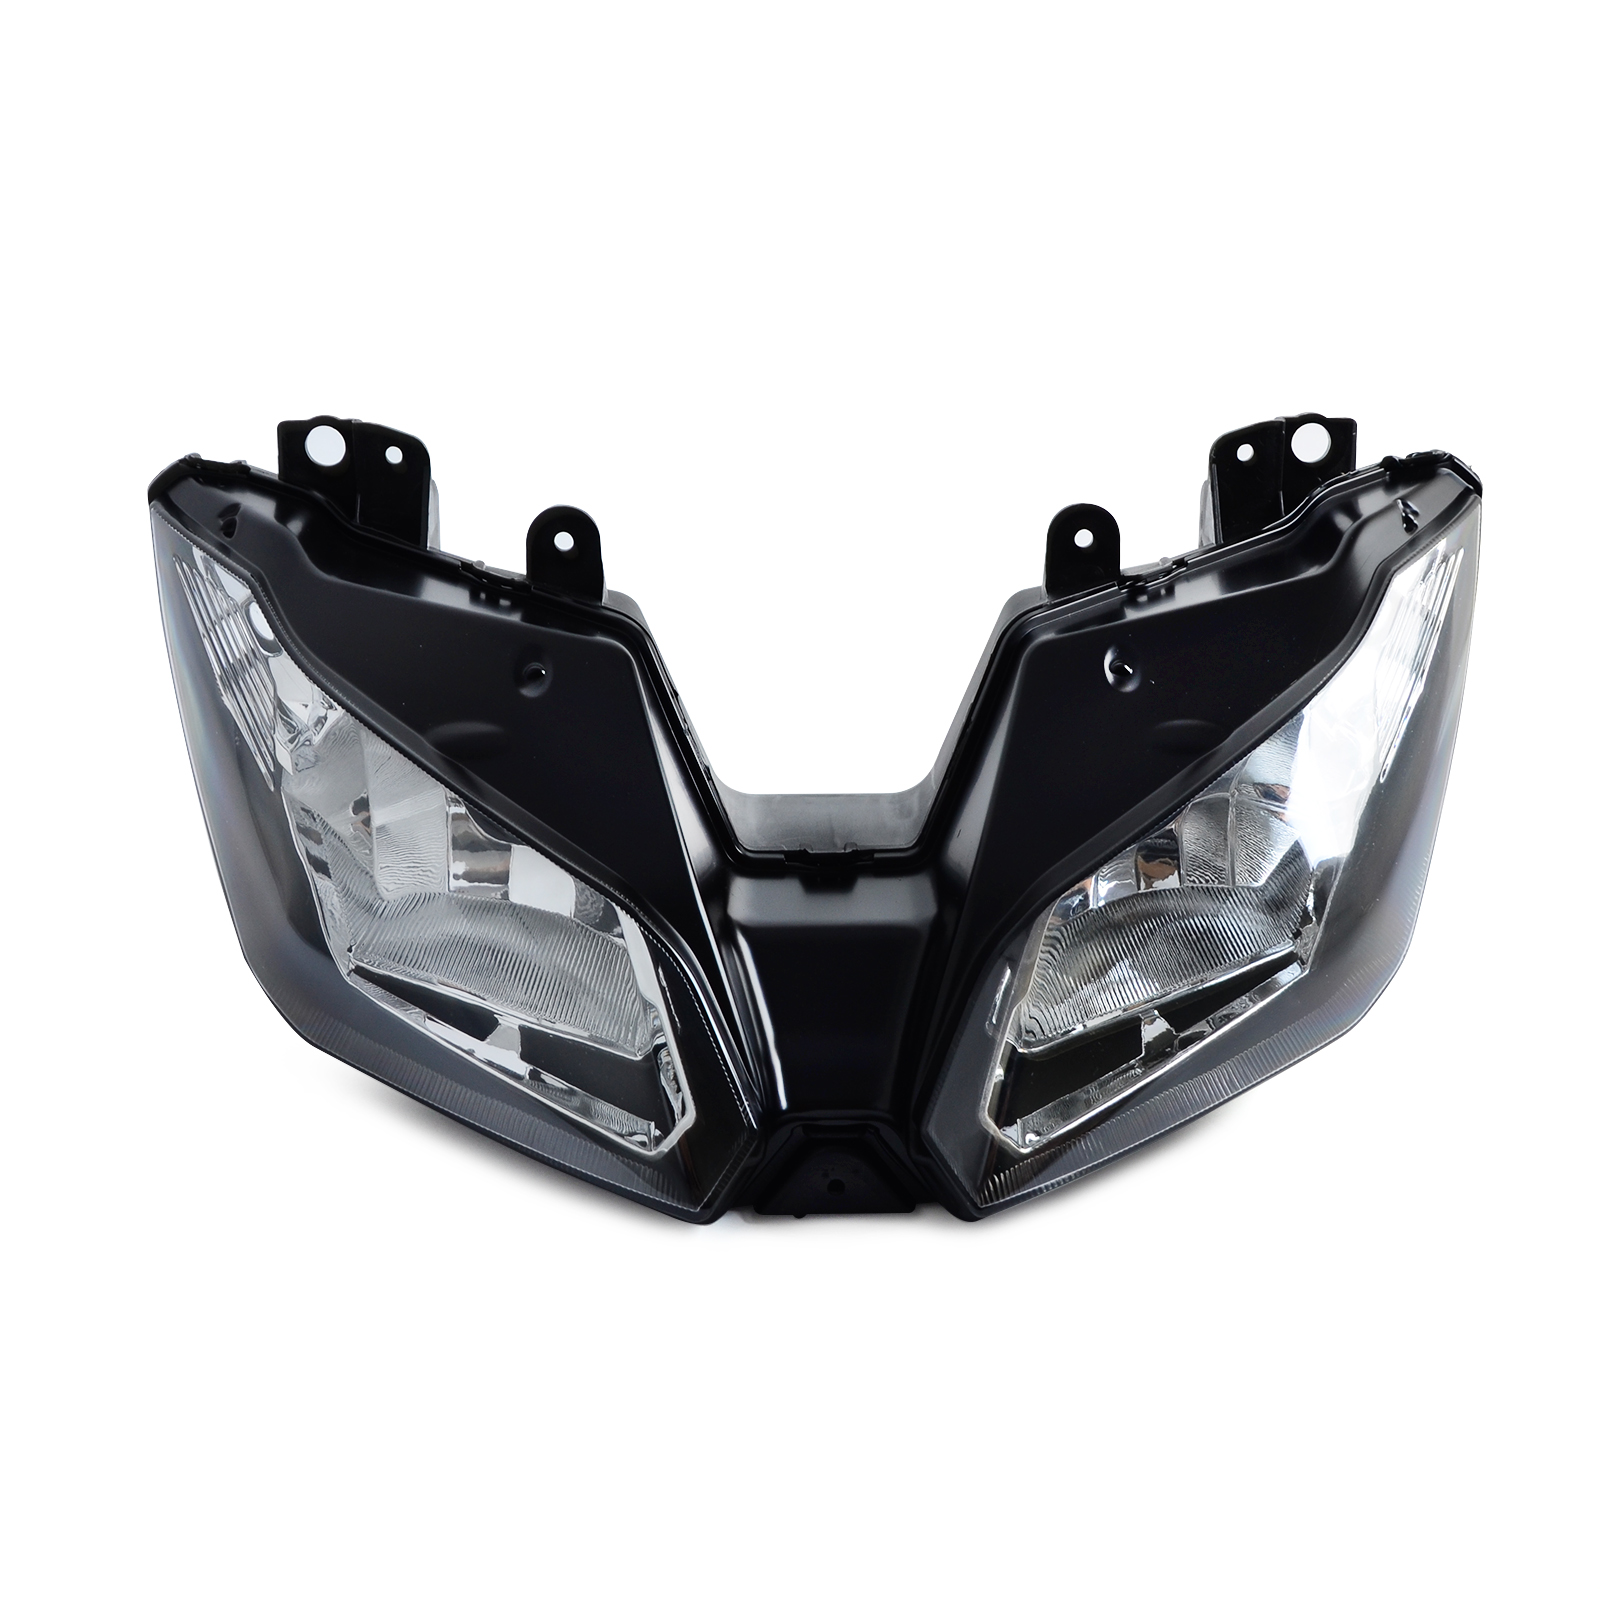 Motorcycle Headlight Assembly For Kawasaki Versys 1000 650 2015 2016 Ninja 300 ABS 2013 2014 2015 Headlamp Head Lamp Light Hot